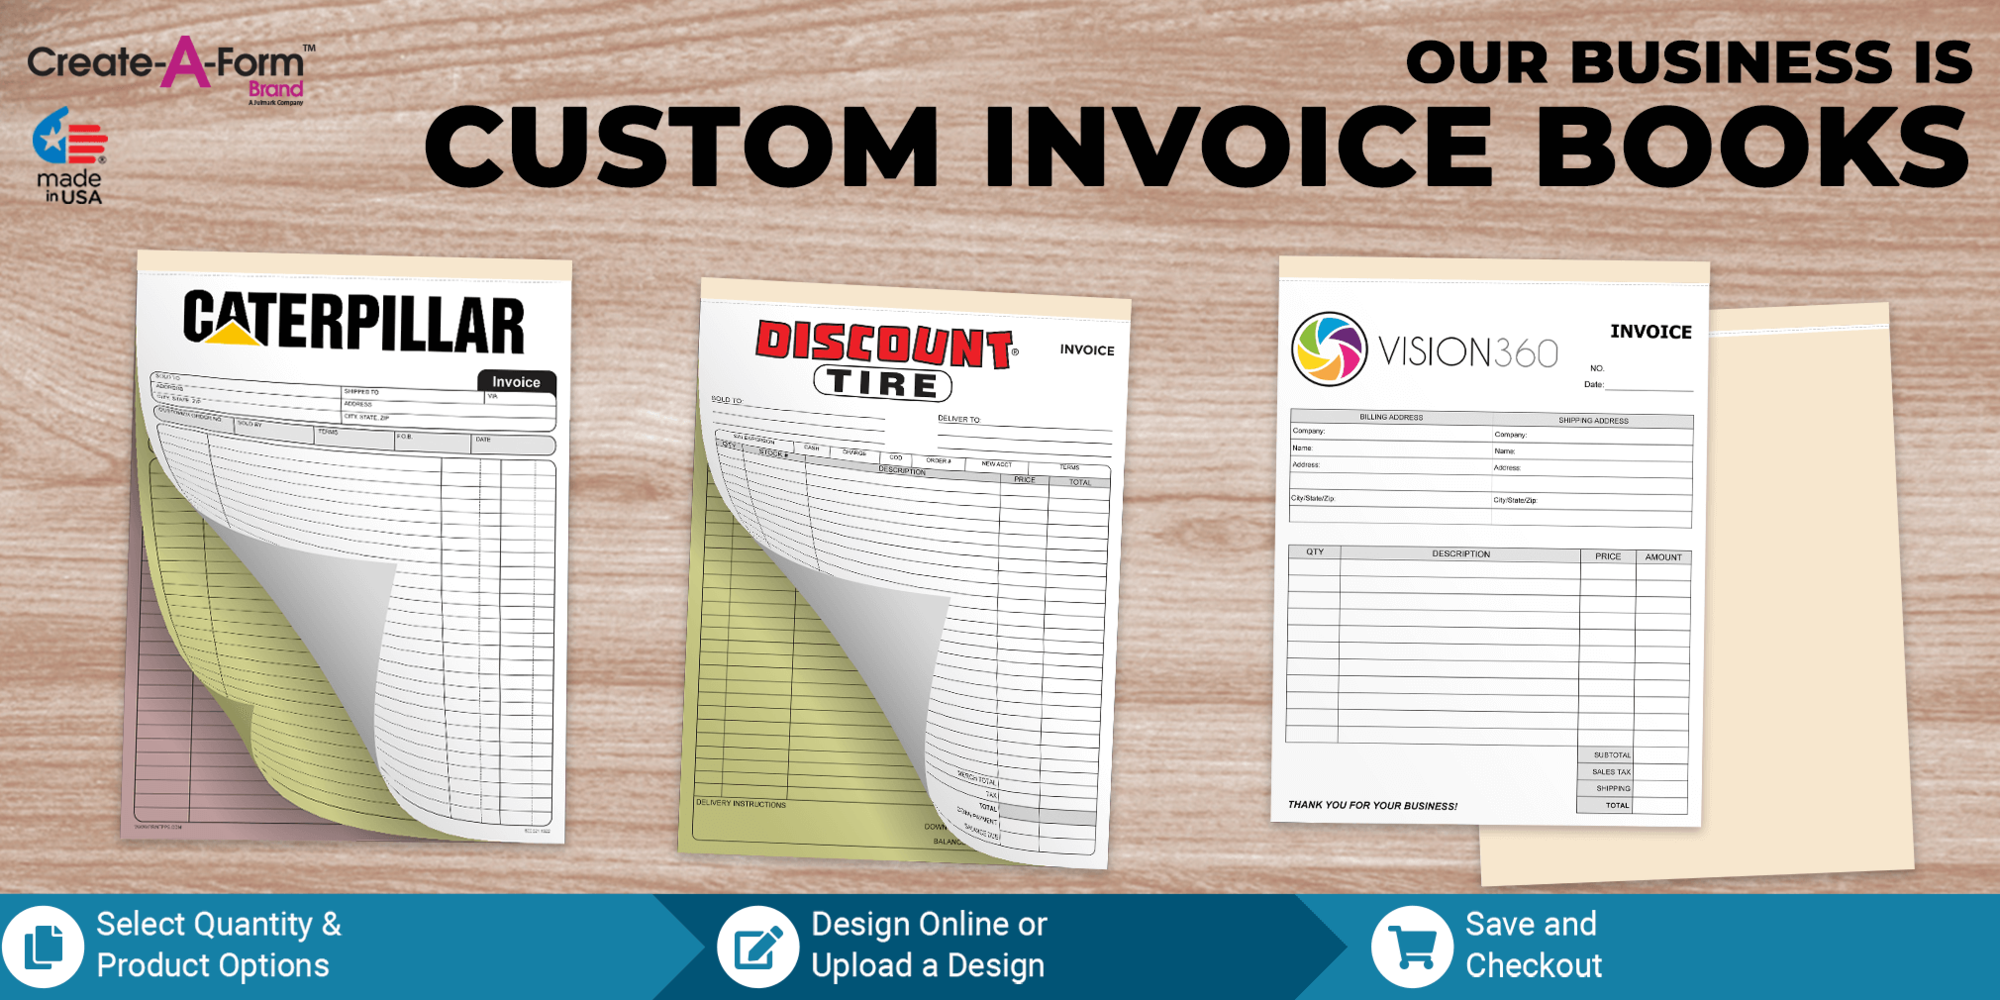 https://printpps.com/images/products_gallery_images/Banner_8_5x11NCR_Invoice_ProdFeat_Cover.png